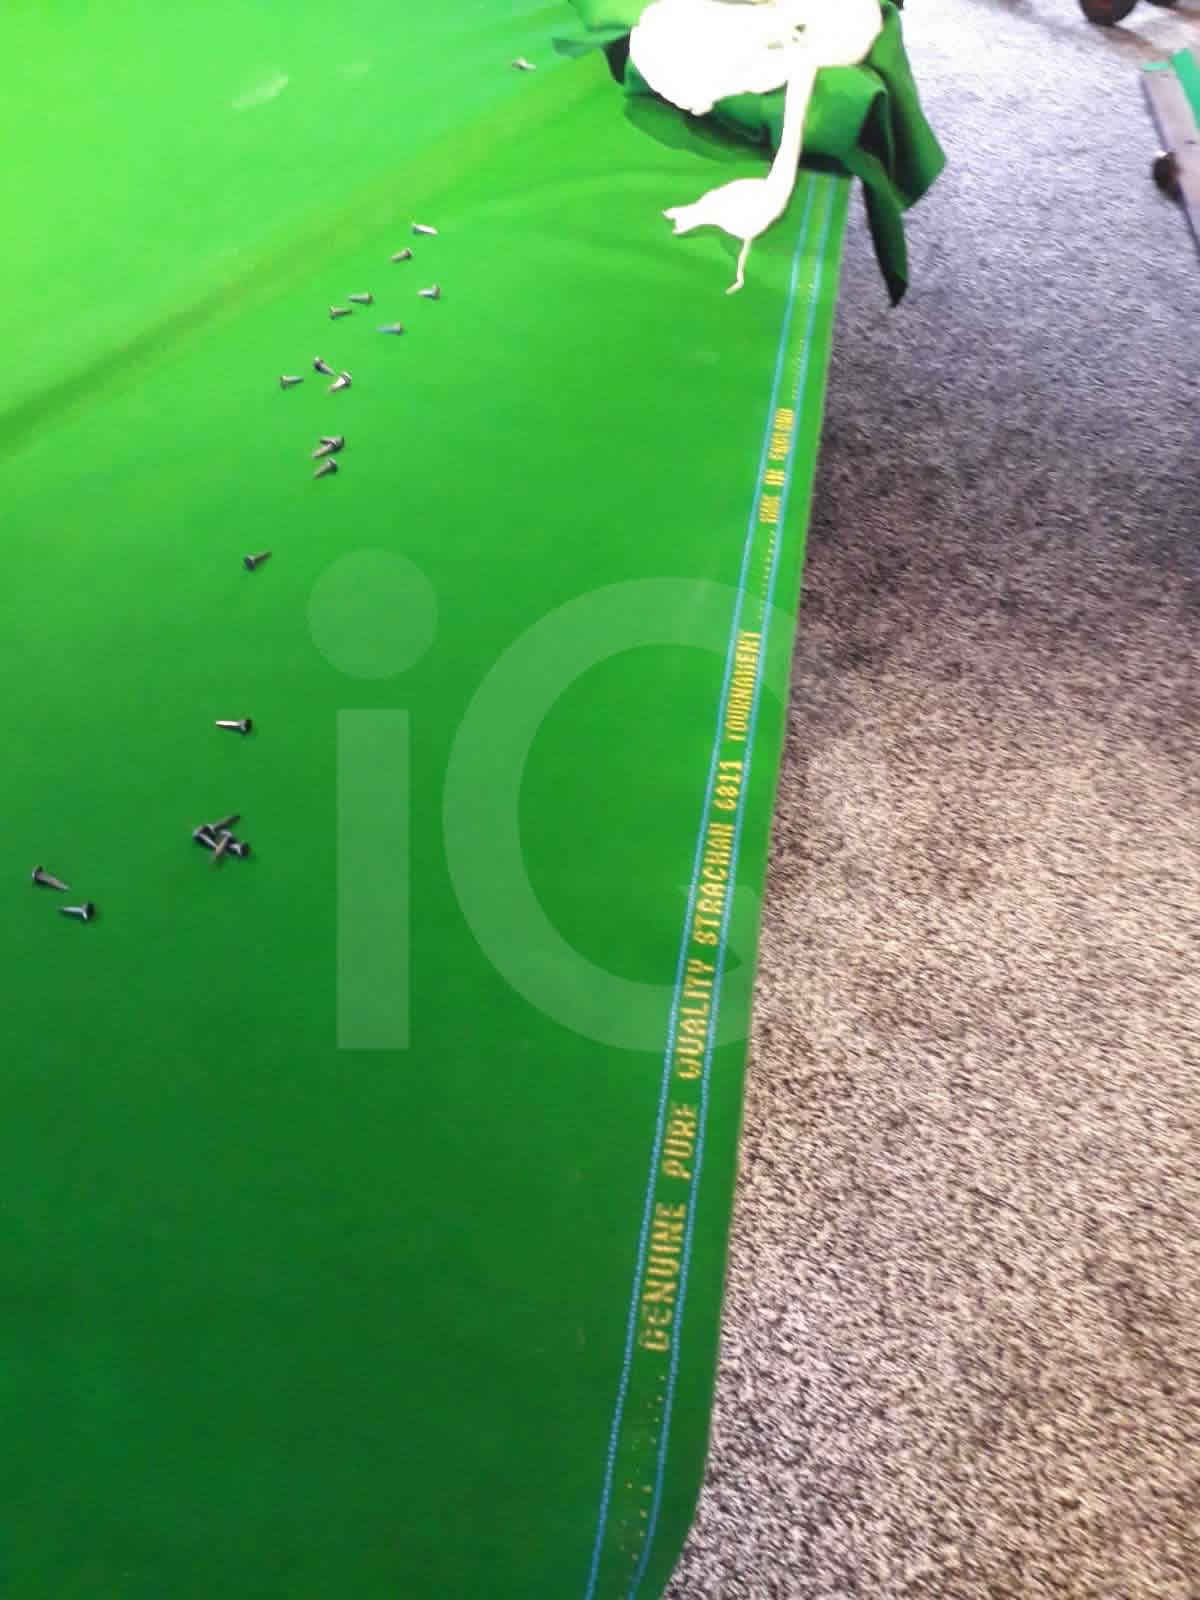 Snooker table recovered by professionals